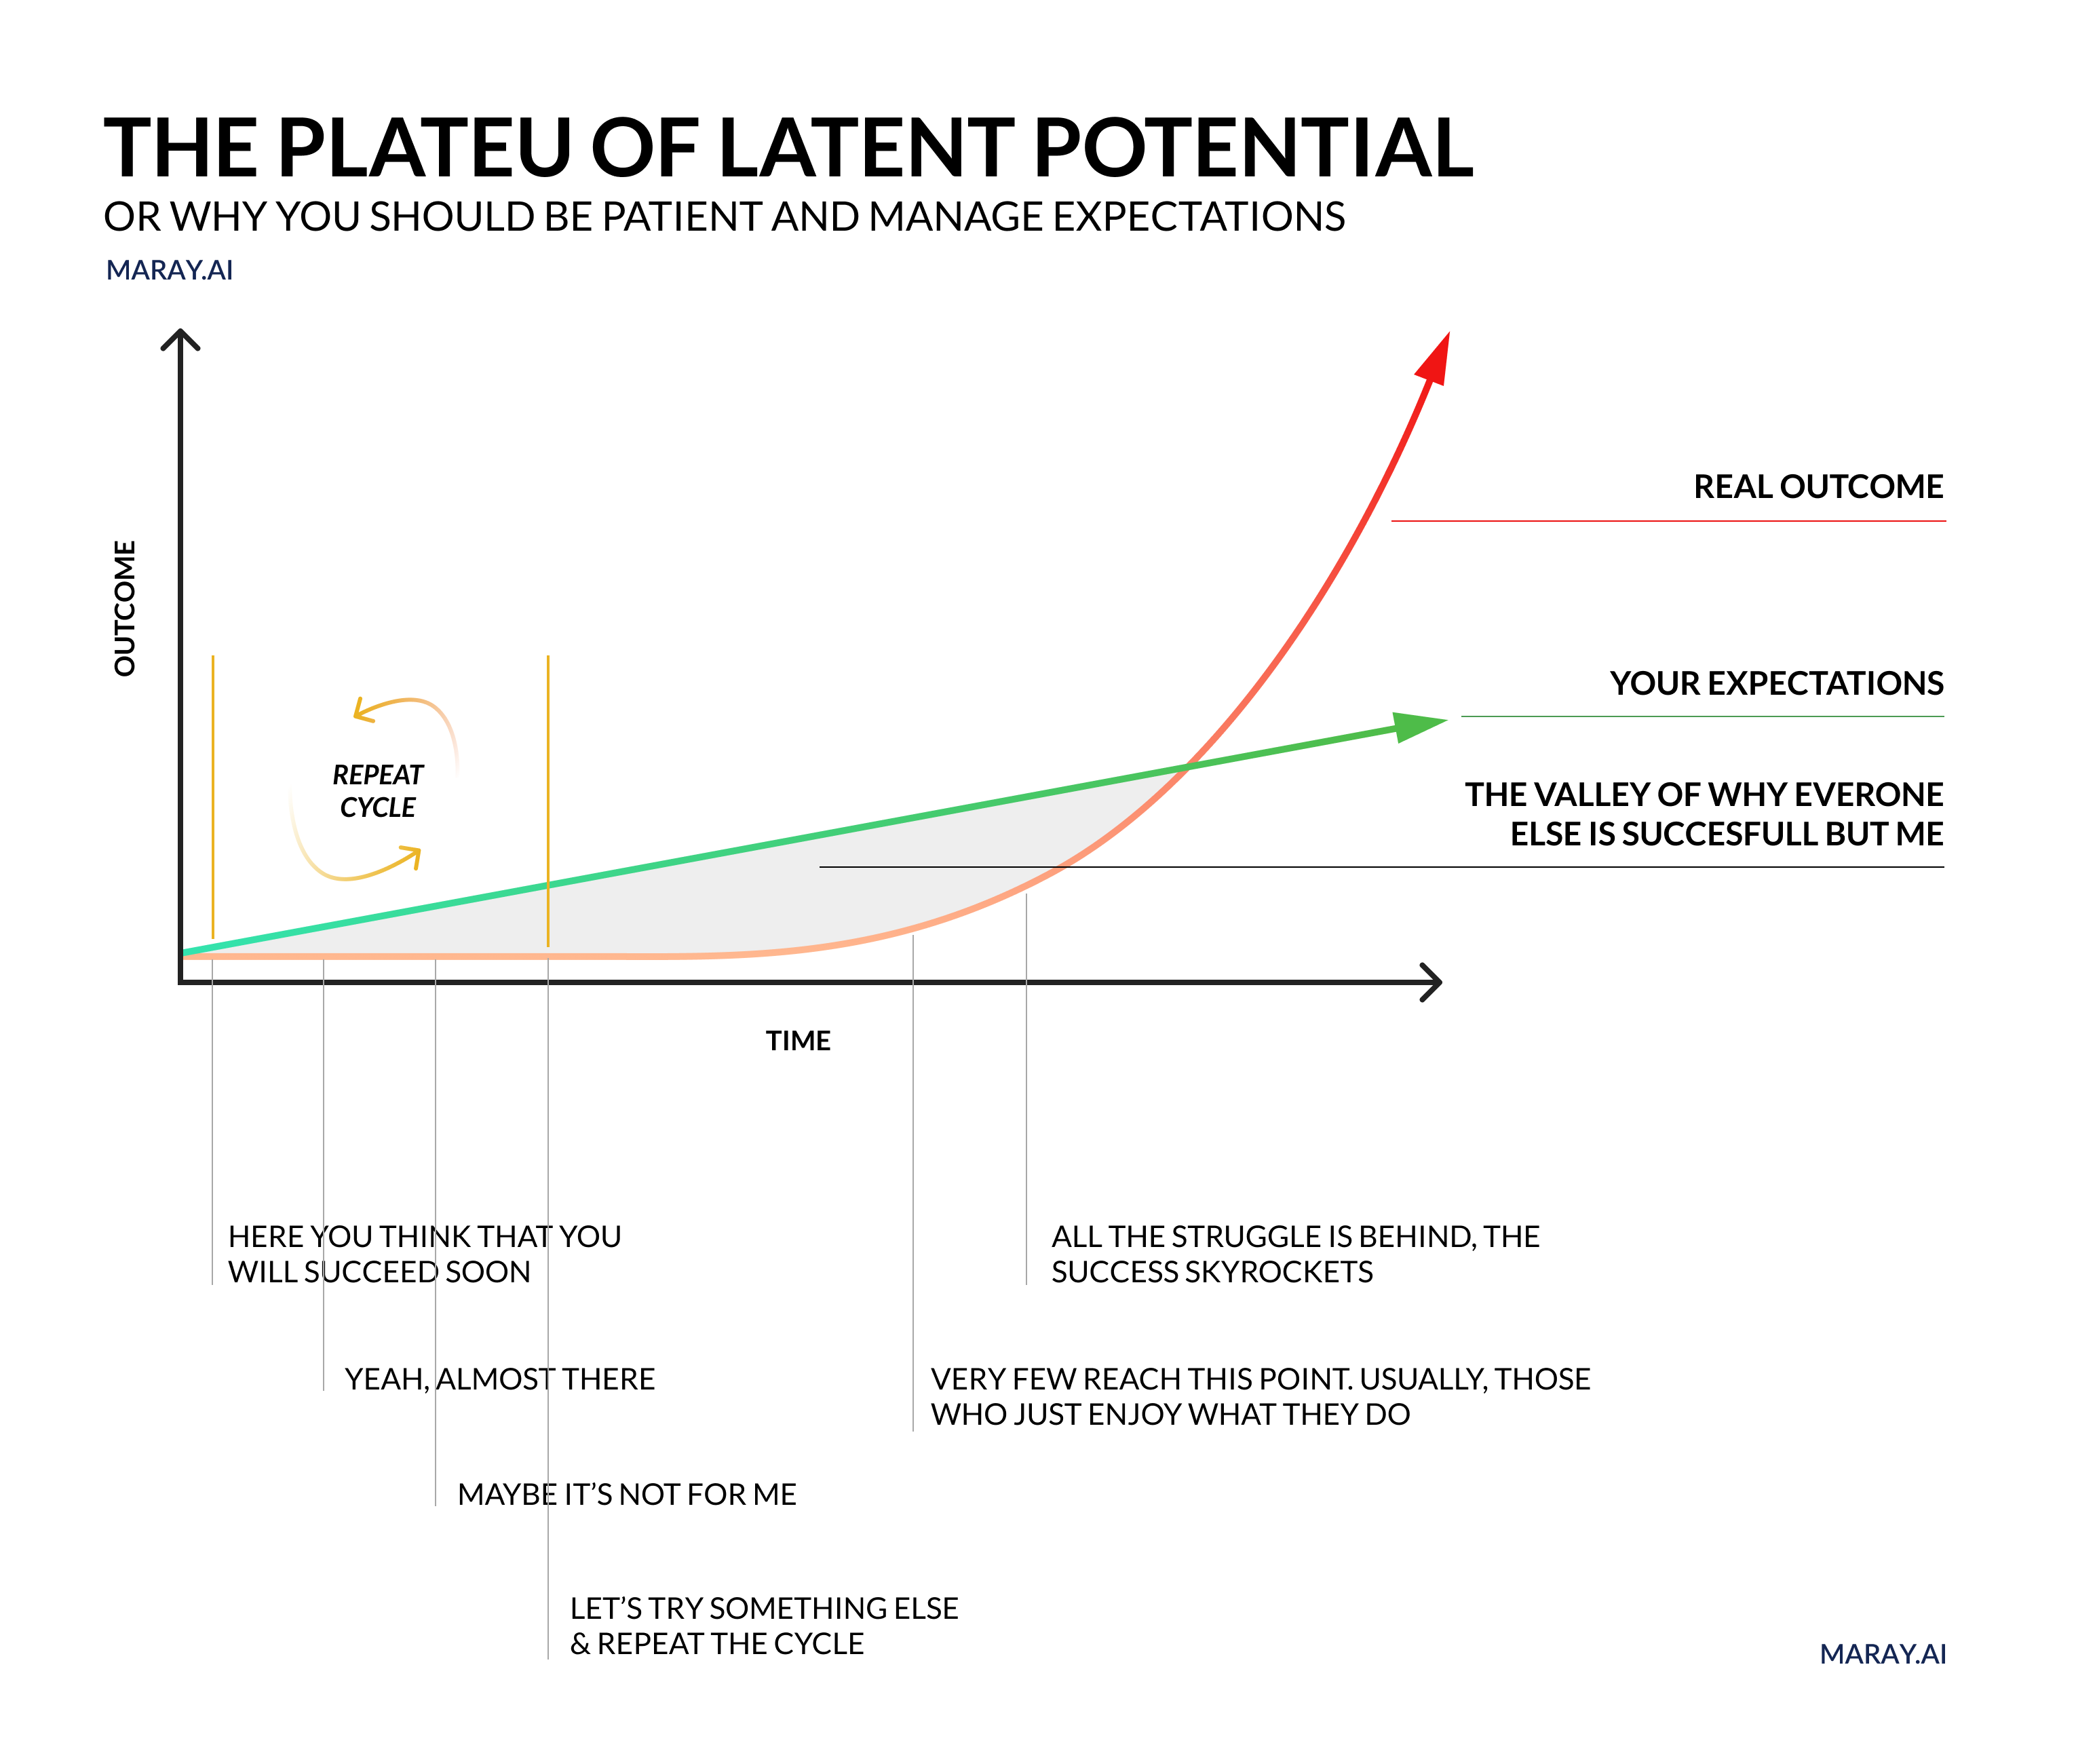 The plateau of latent potential. Disappointment valley is often the roadblock for progress.